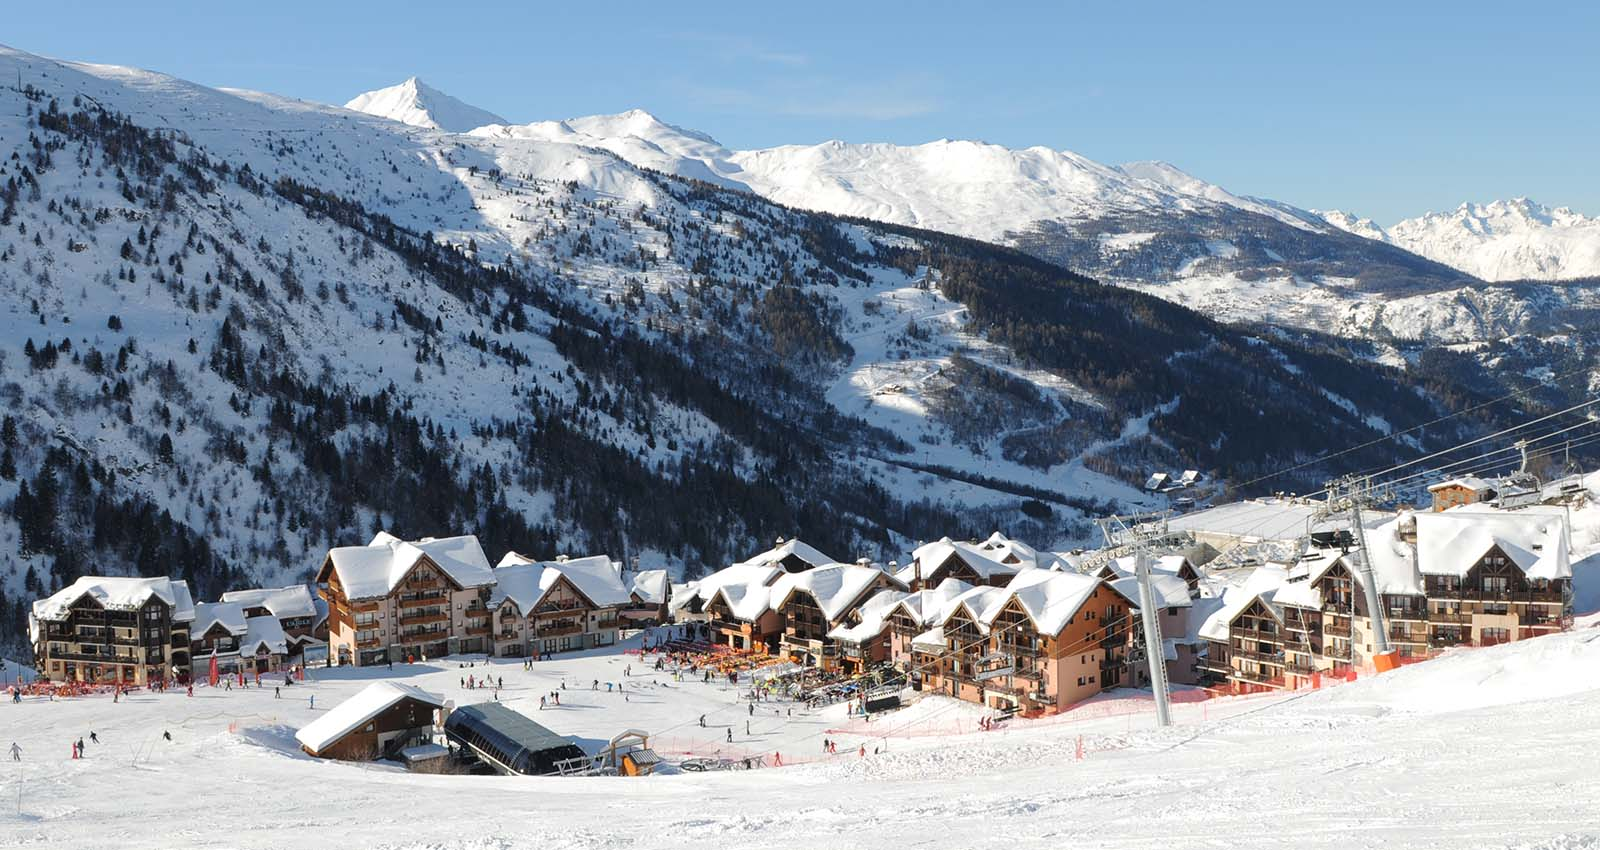 Take your school or group on ski trip to France